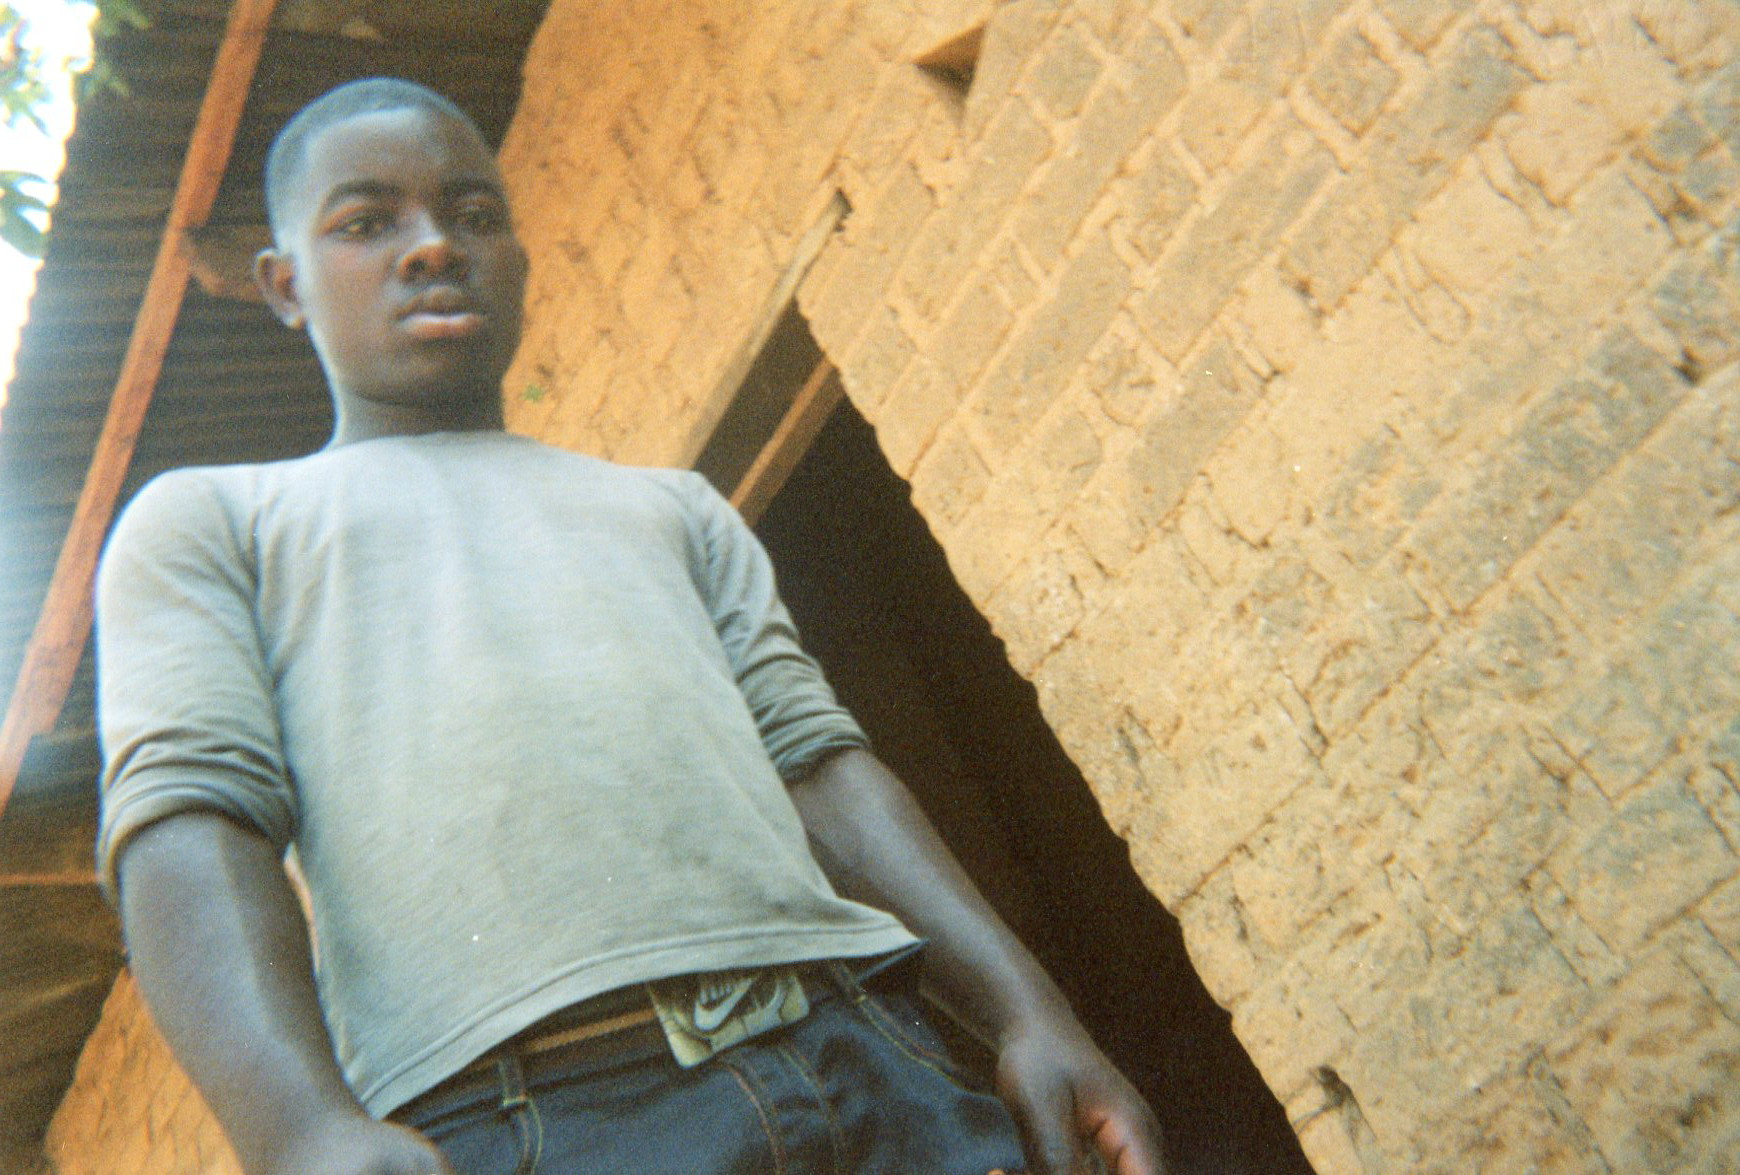 This boy ex-child soldier helped me a lot during this sad period of my life while I was in the armed groups.